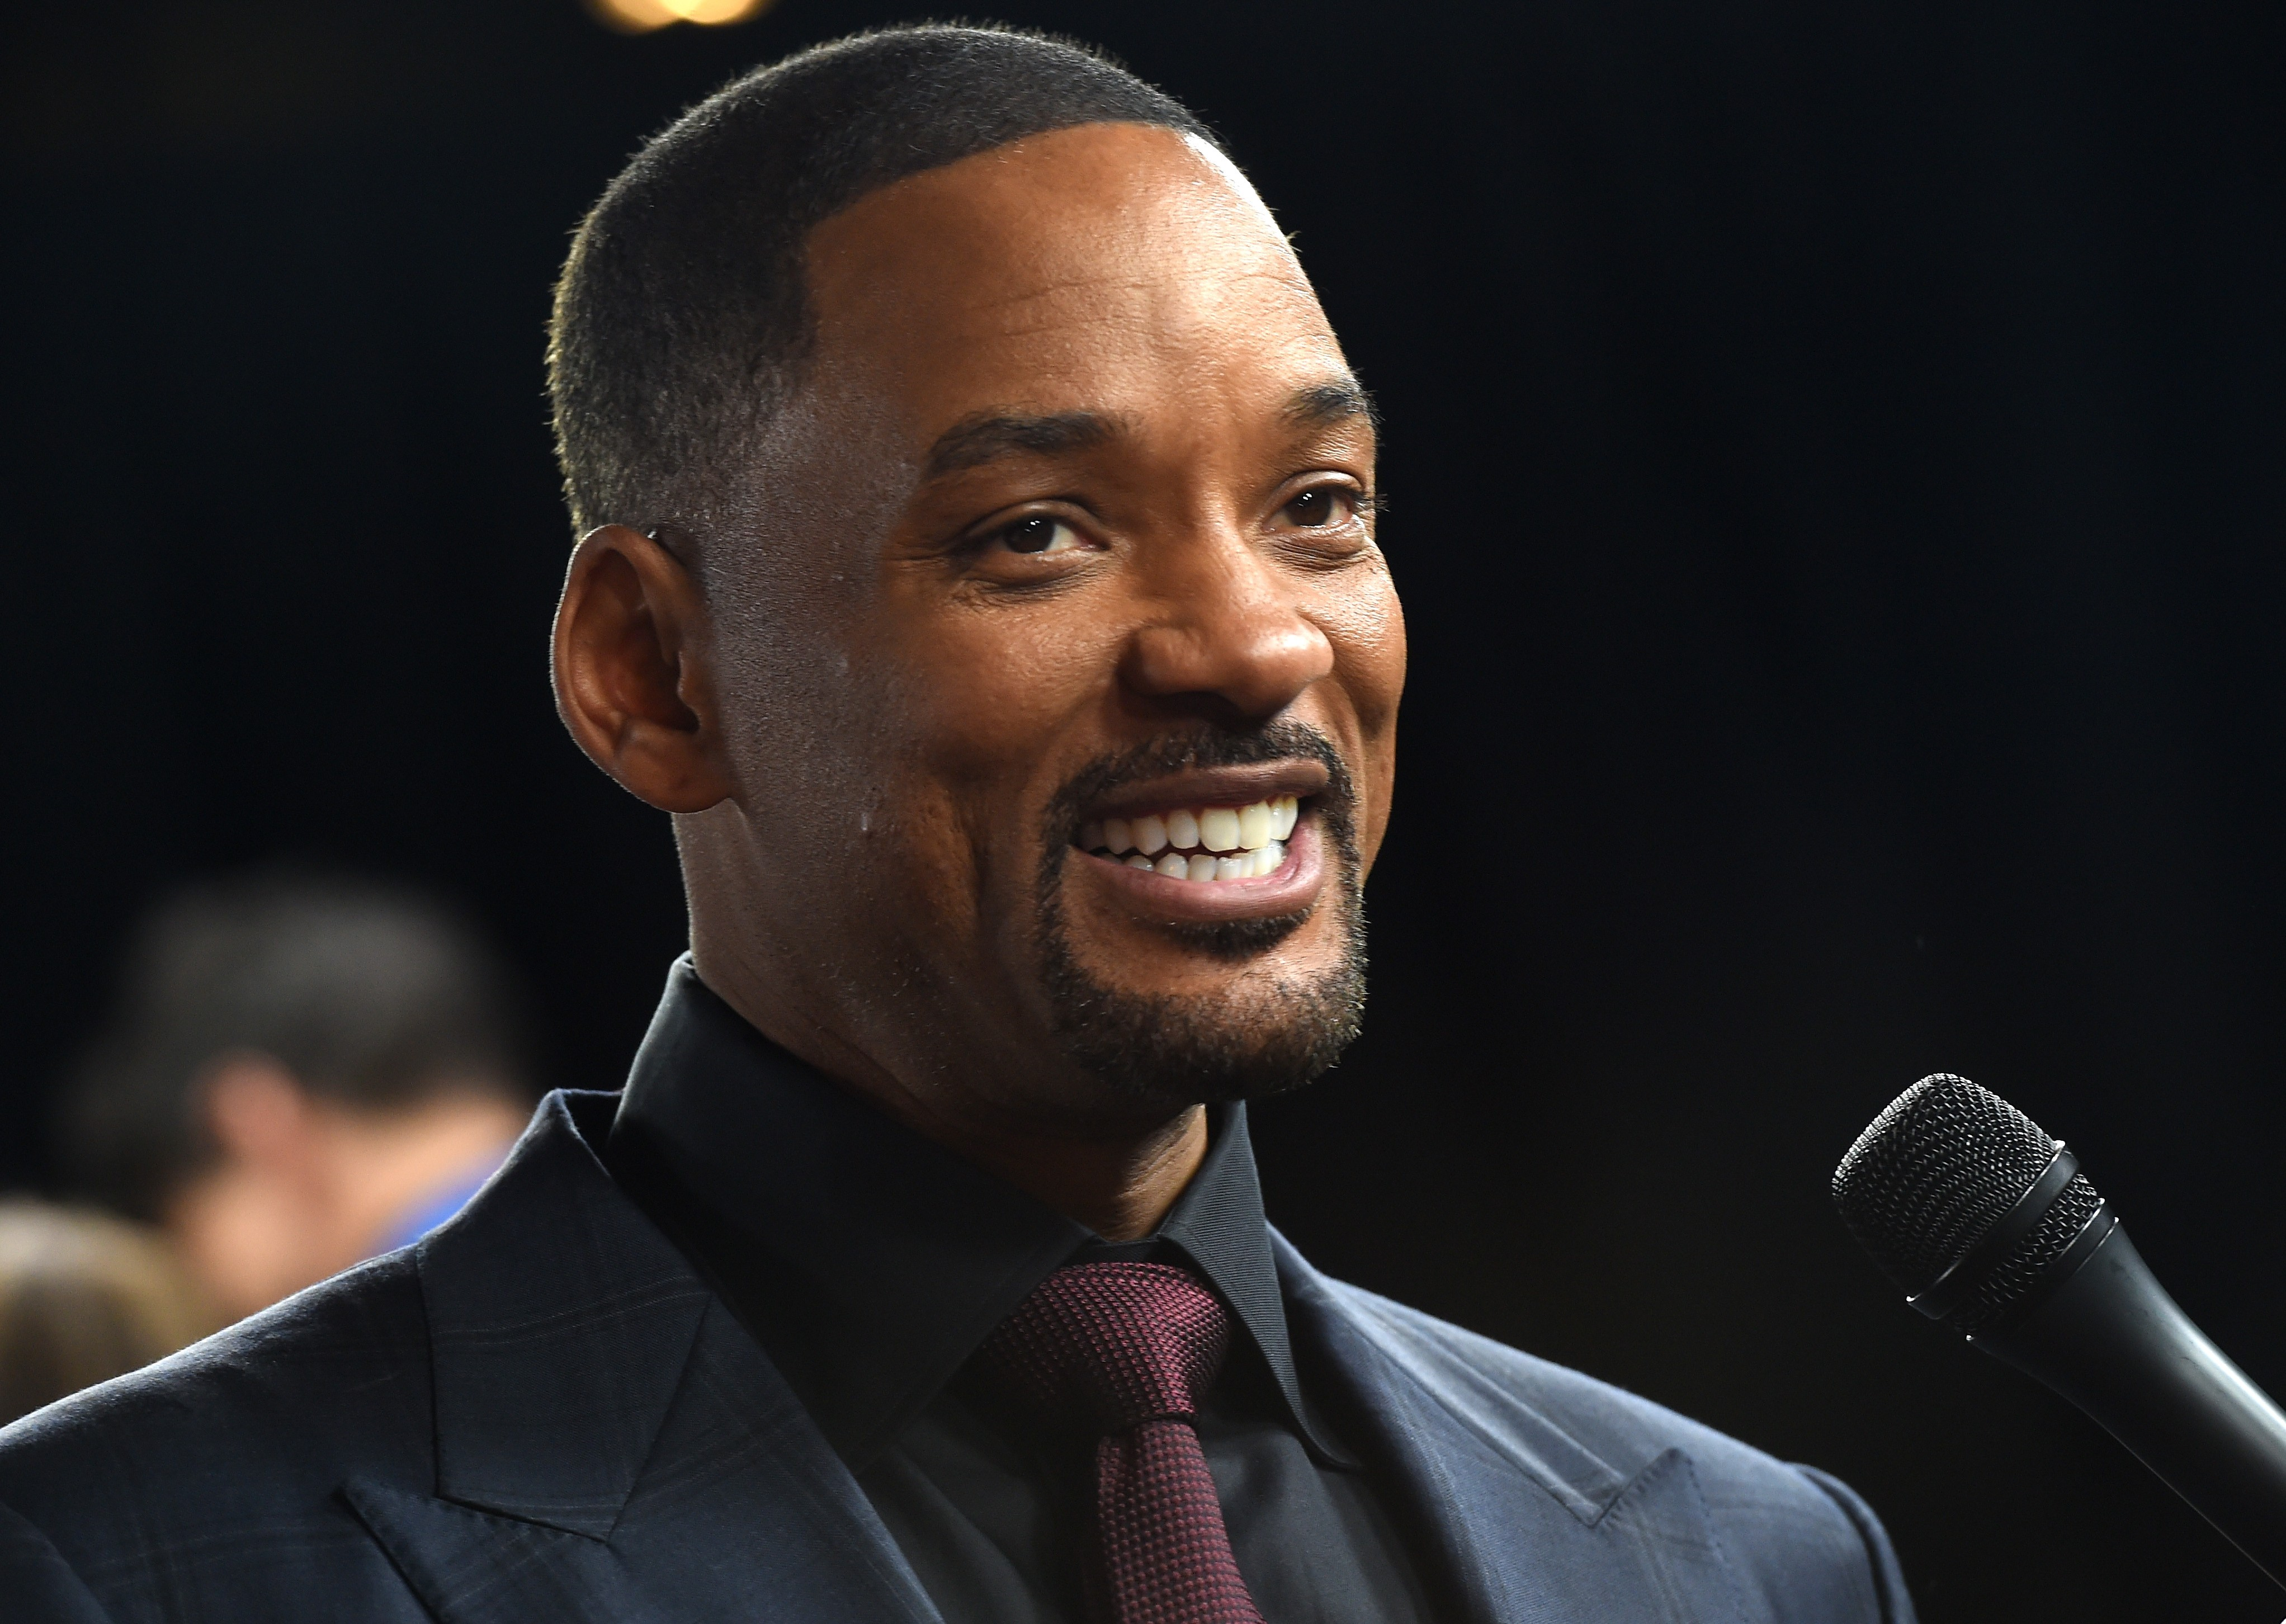 O ator Will Smith (Foto: Getty Images)